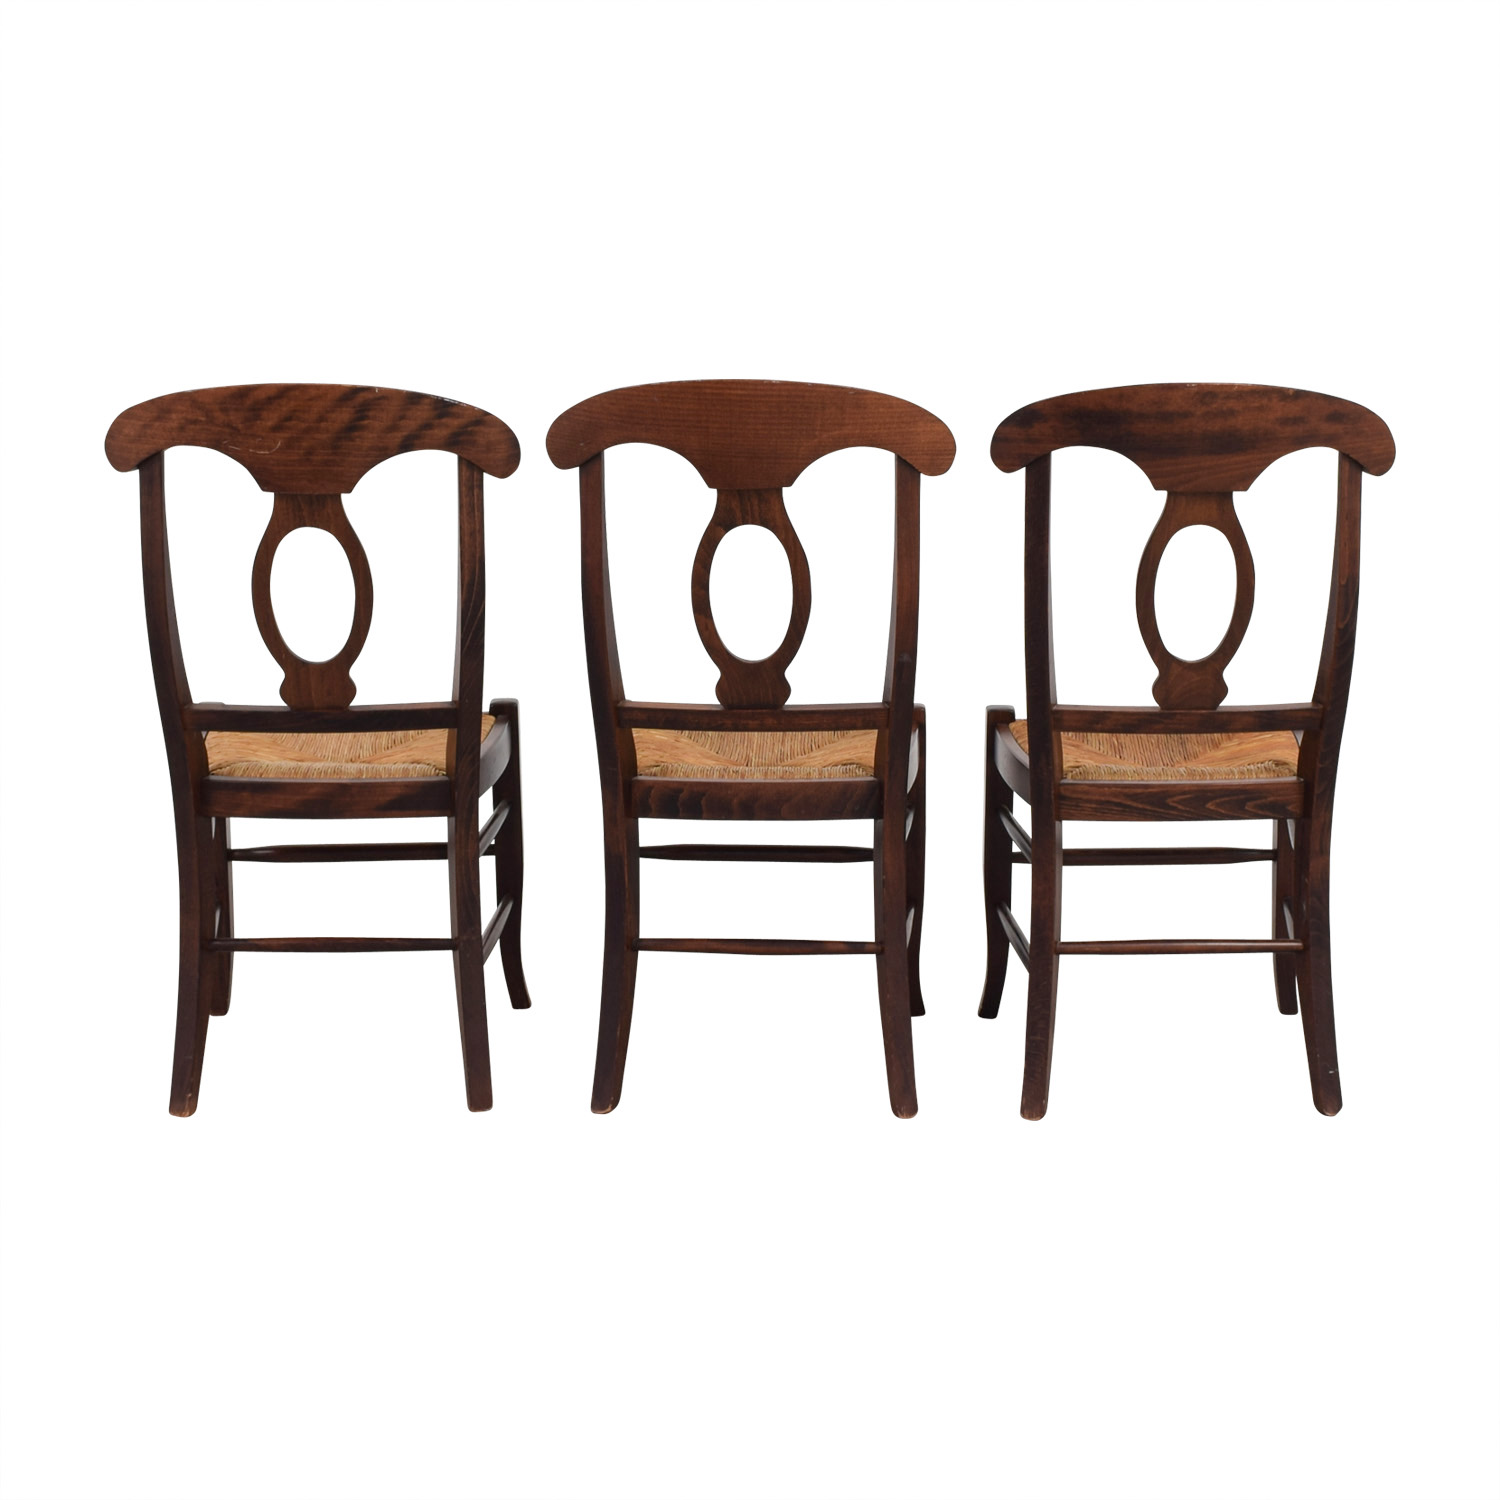 Pottery Barn Chairs: Pottery Barn Pottery Barn Napoleon Chairs / Chairs